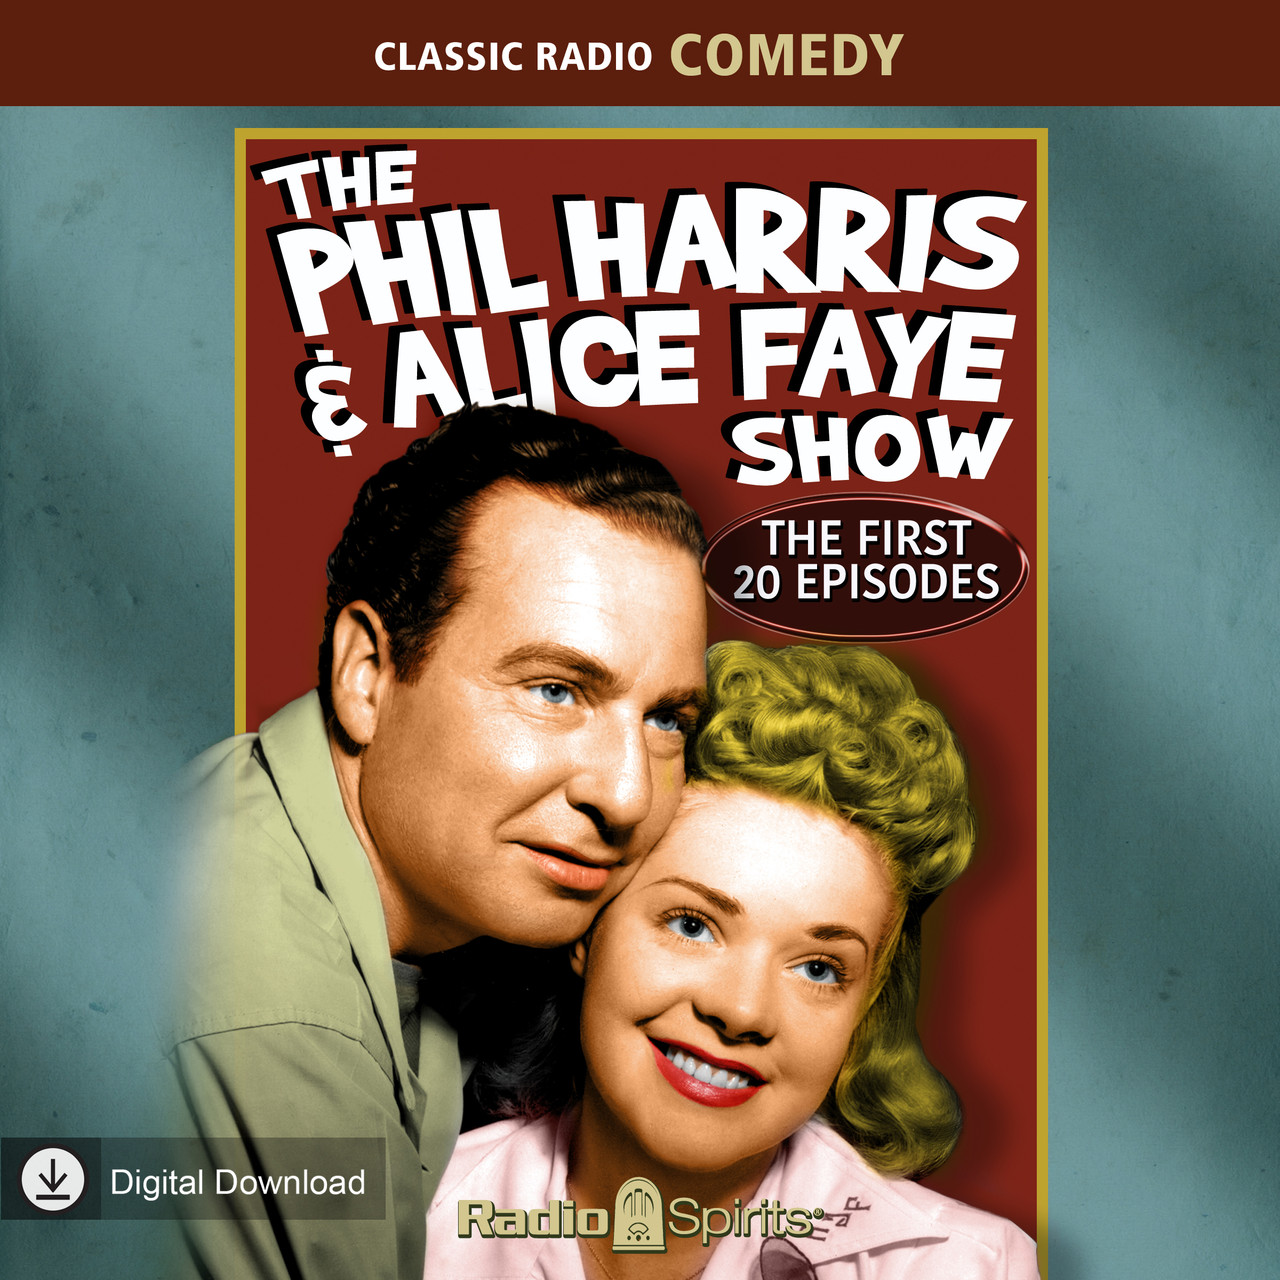 The Phil Harris - Alice Faye Show: The First 20 Episodes (MP3 Download)